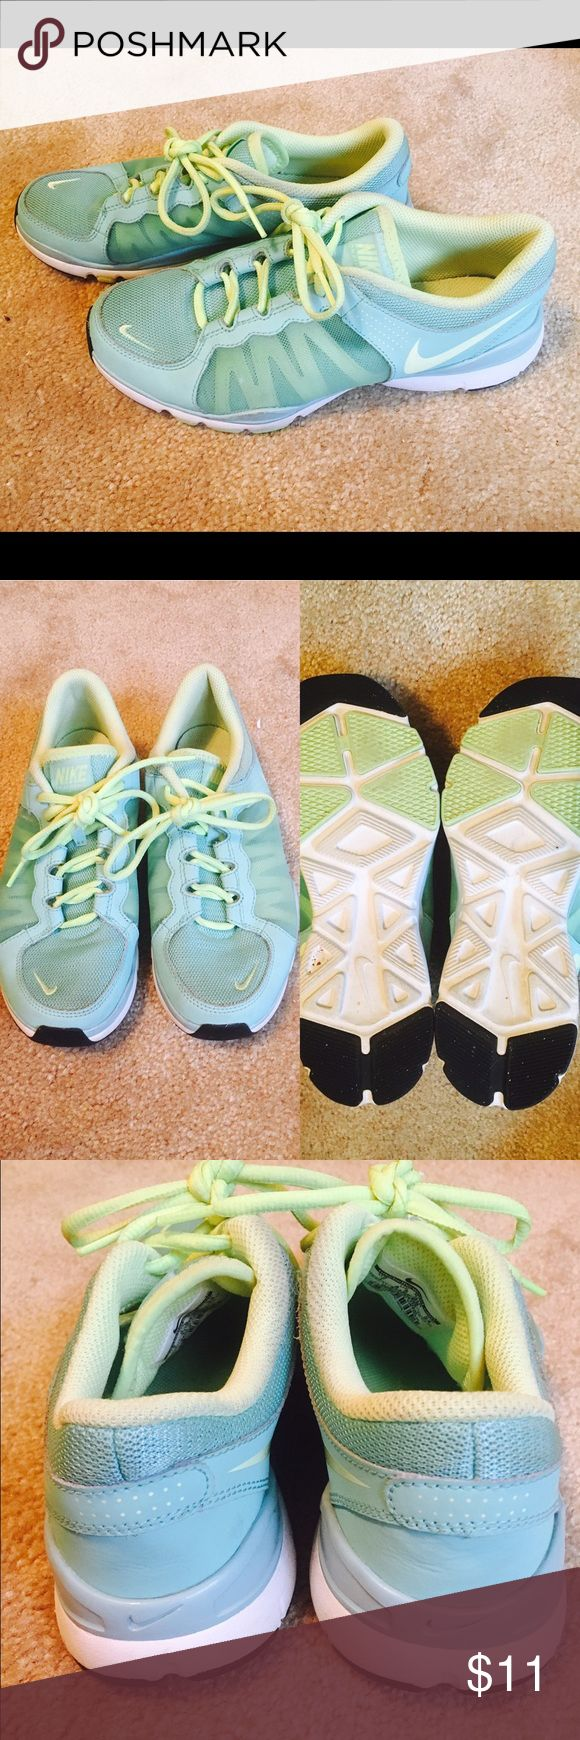 Nike Training Shoes Size 7 Shows some signs of wear, but DEFINITELY still has a ton of life left in them! Size 7, Nike Training in tealish-blue and lime green Nike Shoes Athletic Shoes